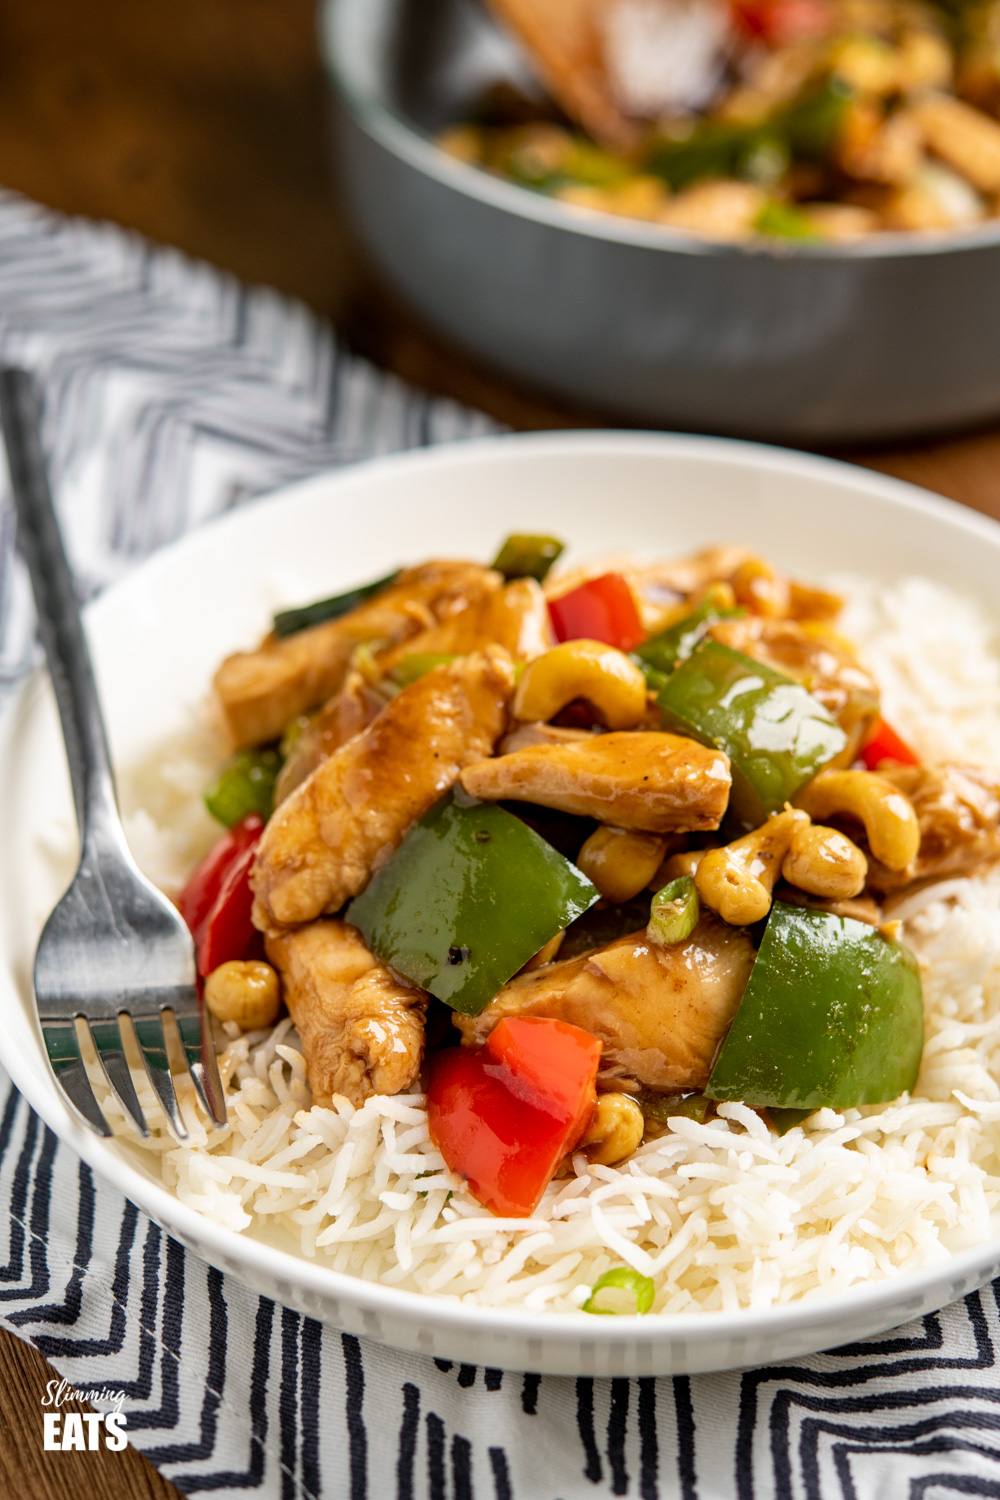 Chinese cashew chicken on white shallow bowl with rice and black handled fork